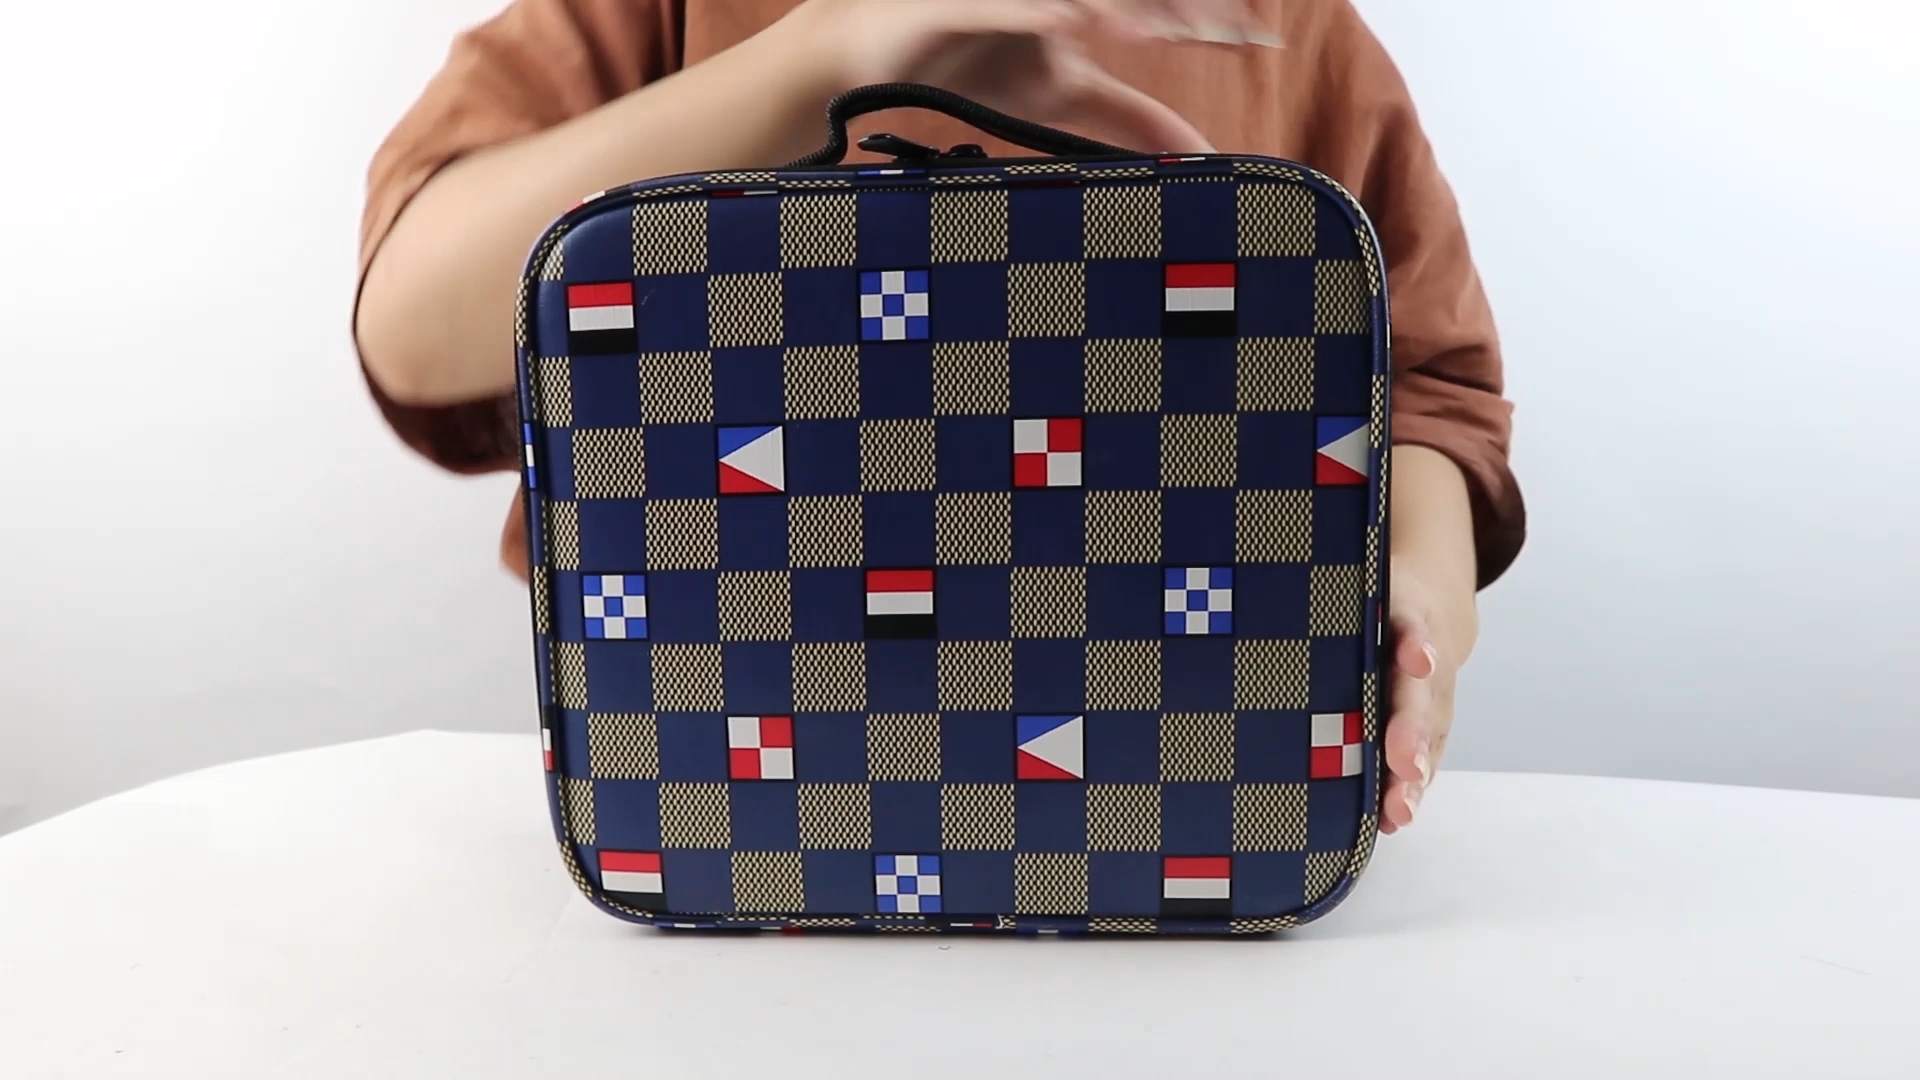 Oem Custom Organization Travel Toiletry Cosmetic Cases Fashion Design Checkered Makeup Bag For Men